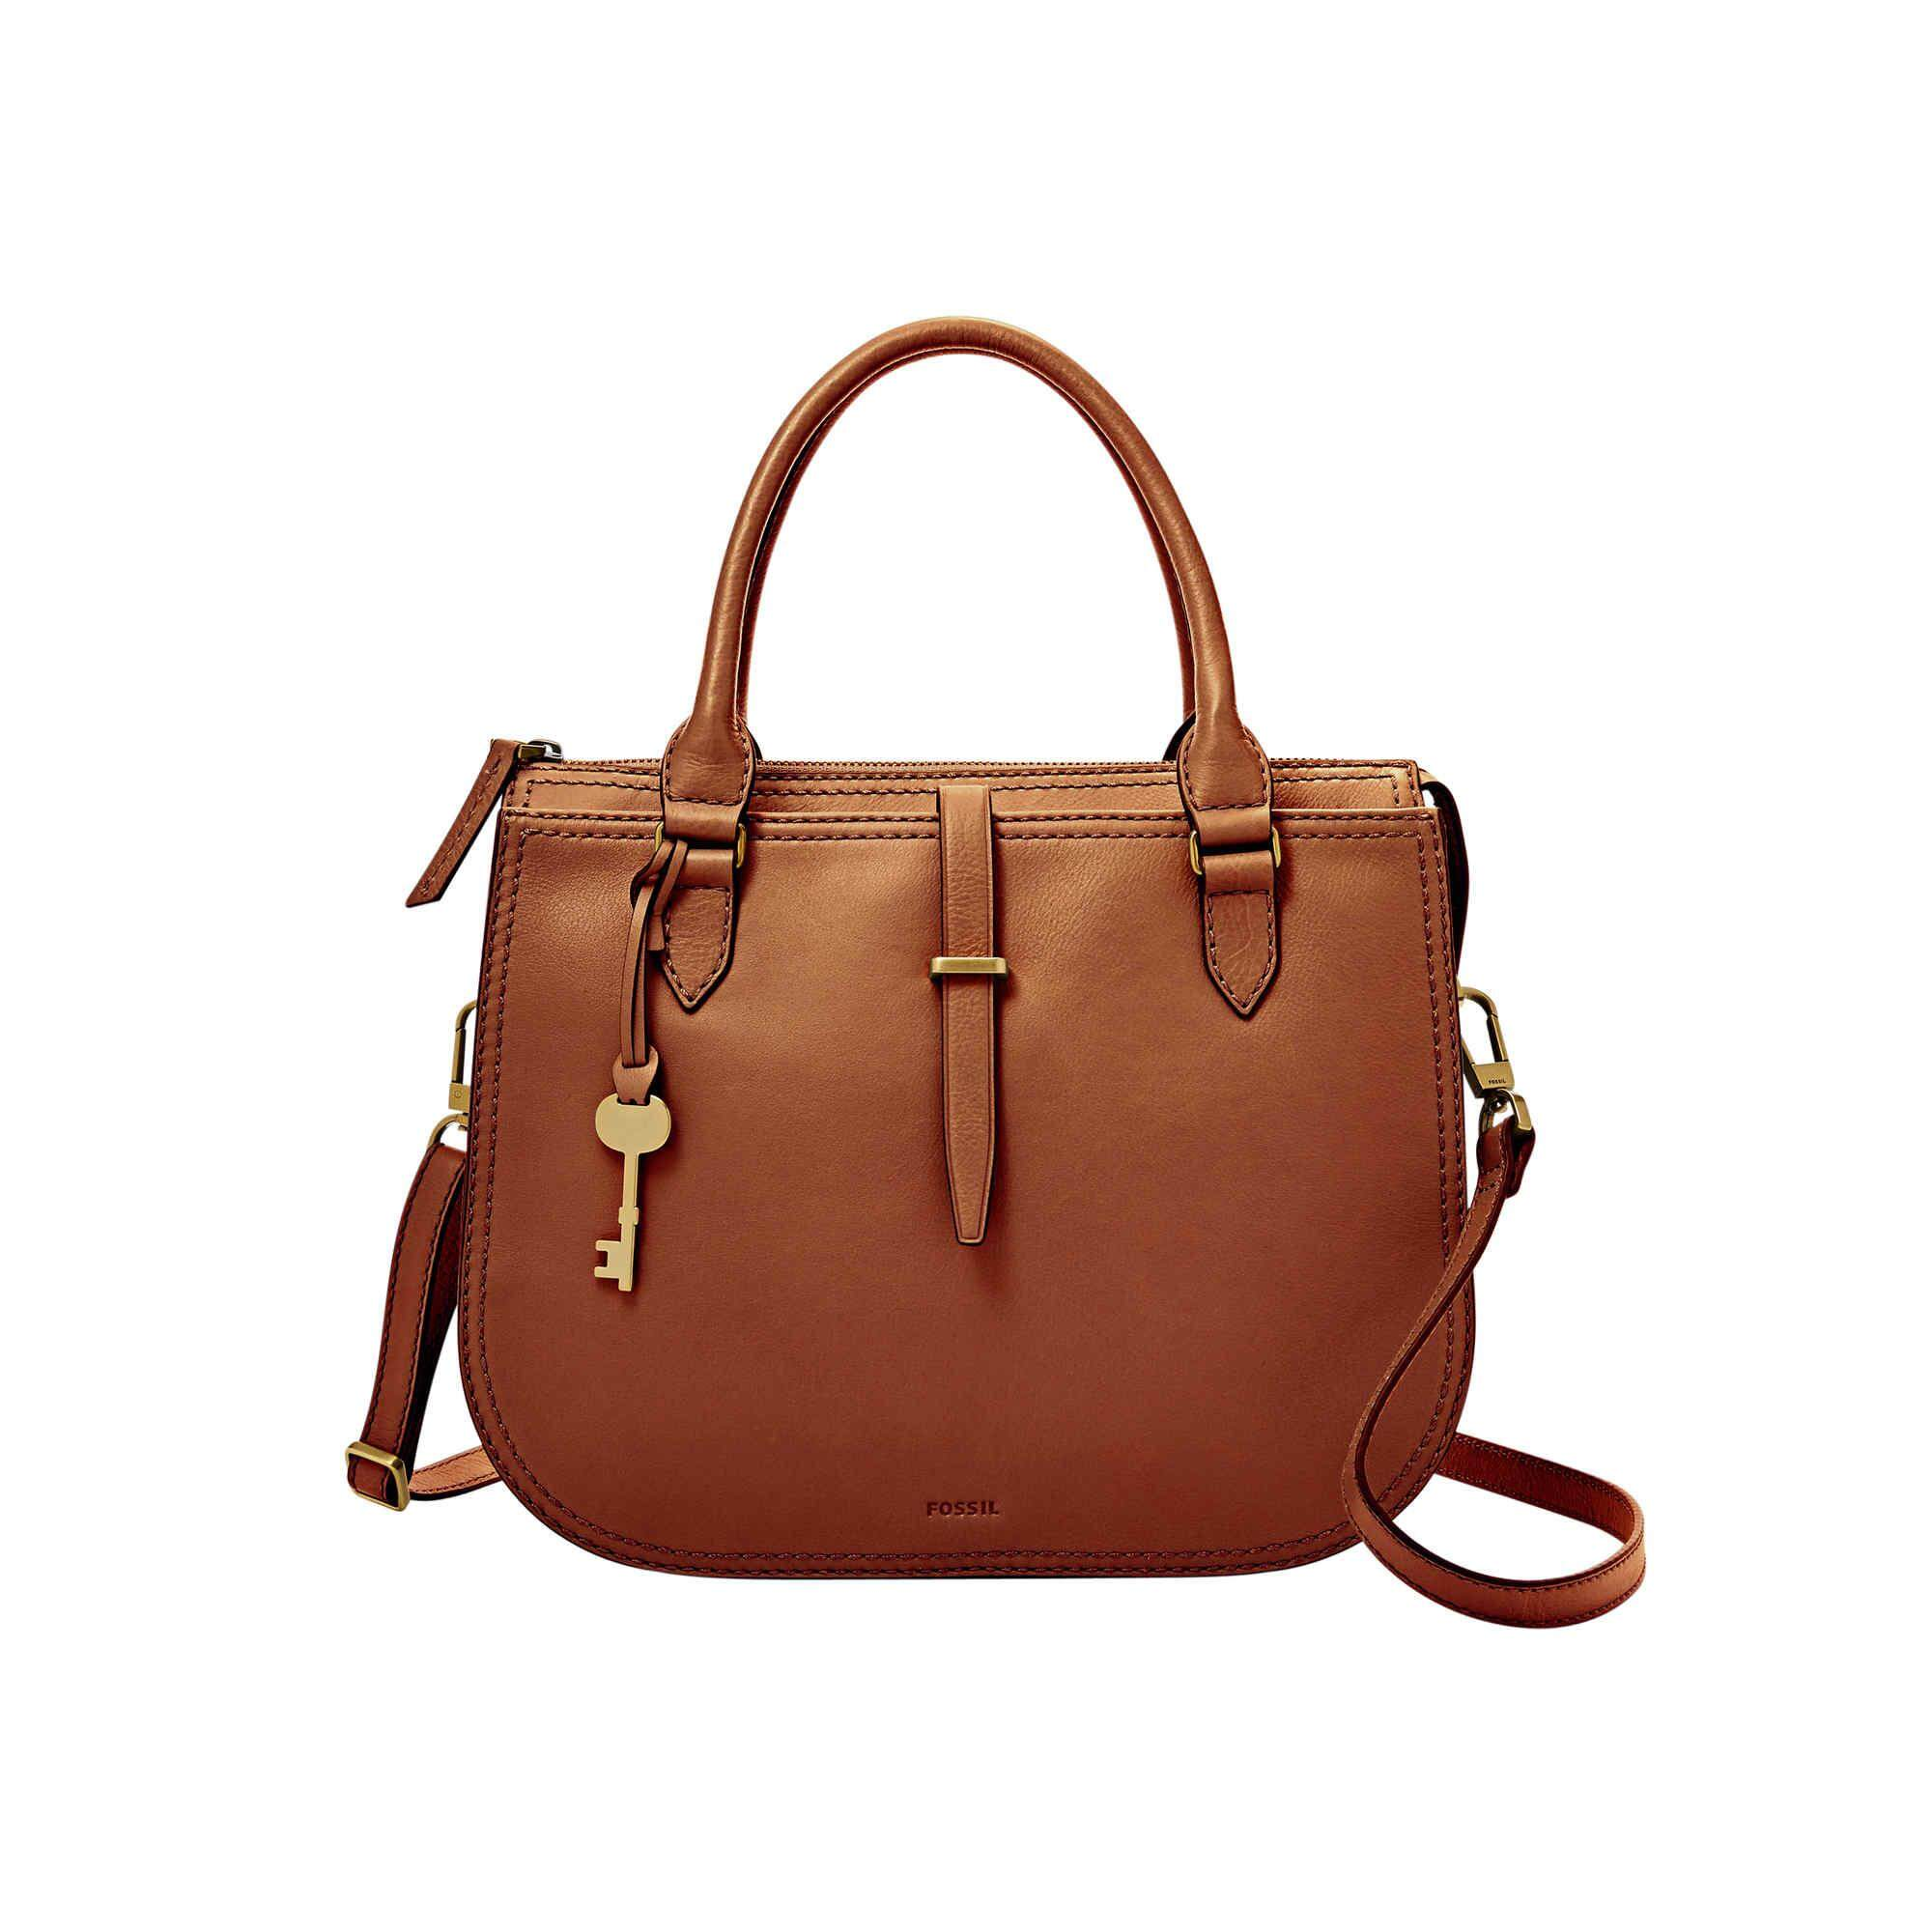 c3e813ffd9 Latest Fossil Women Cross Body   Shoulder Bags Products